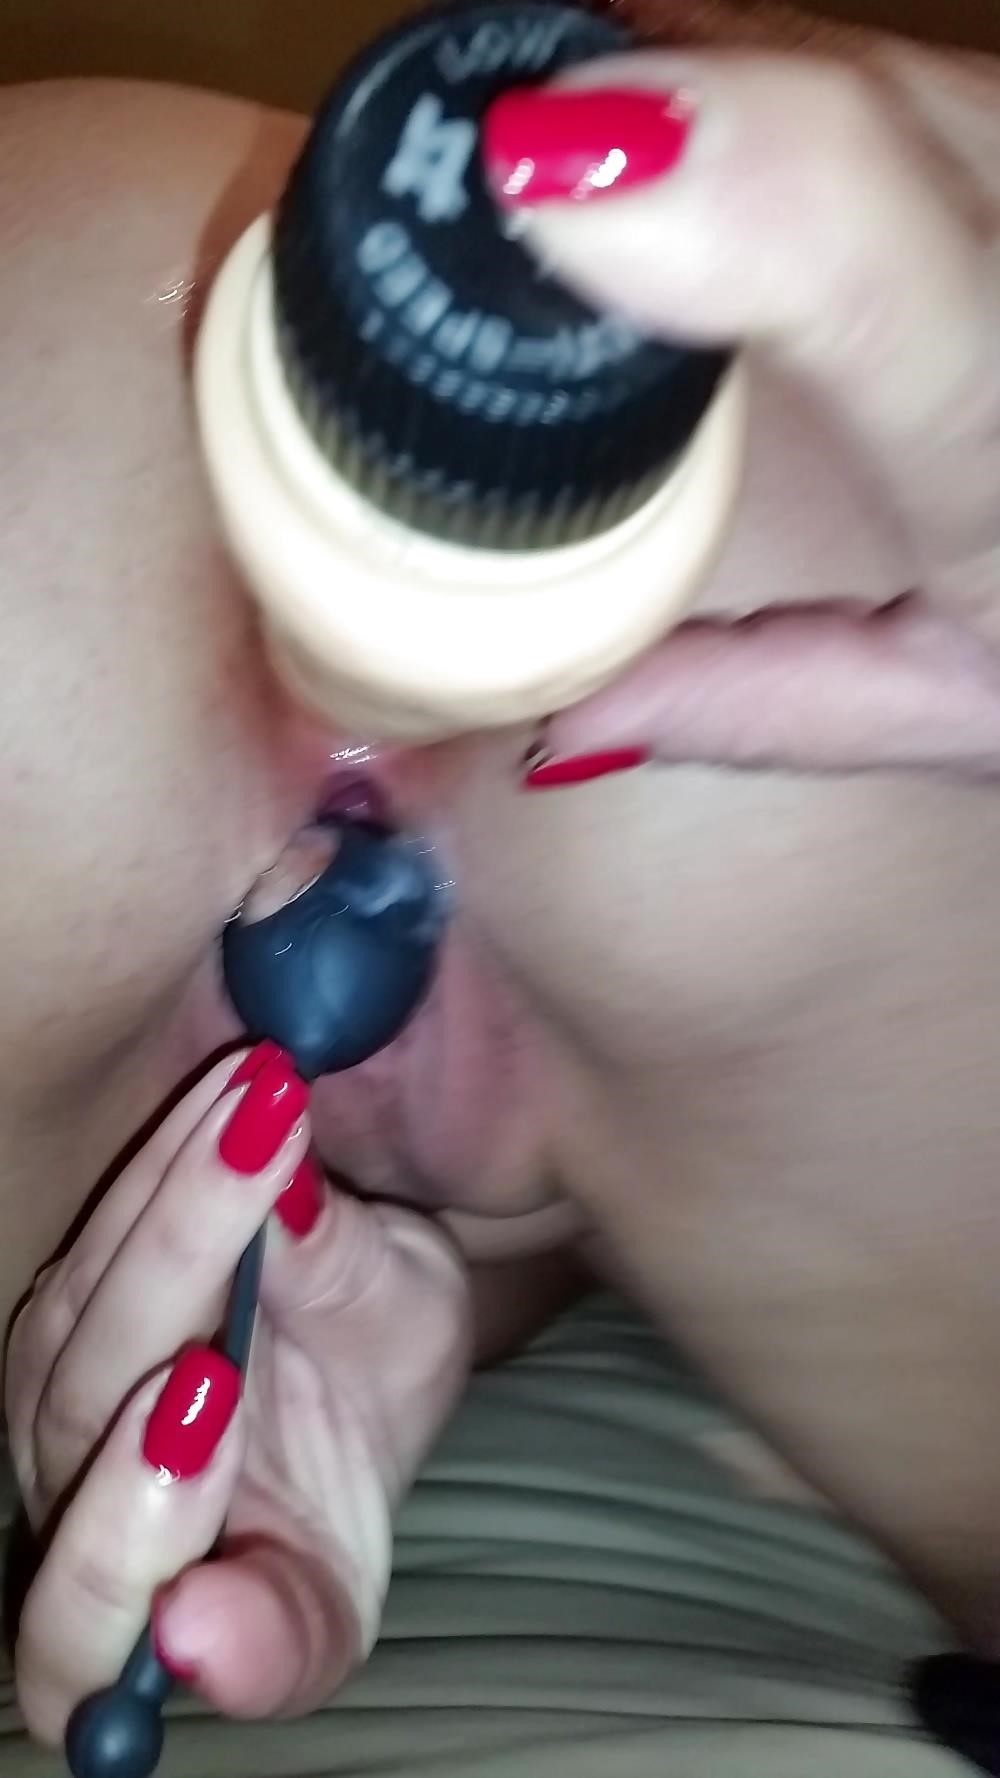 Squirt from clit-9665